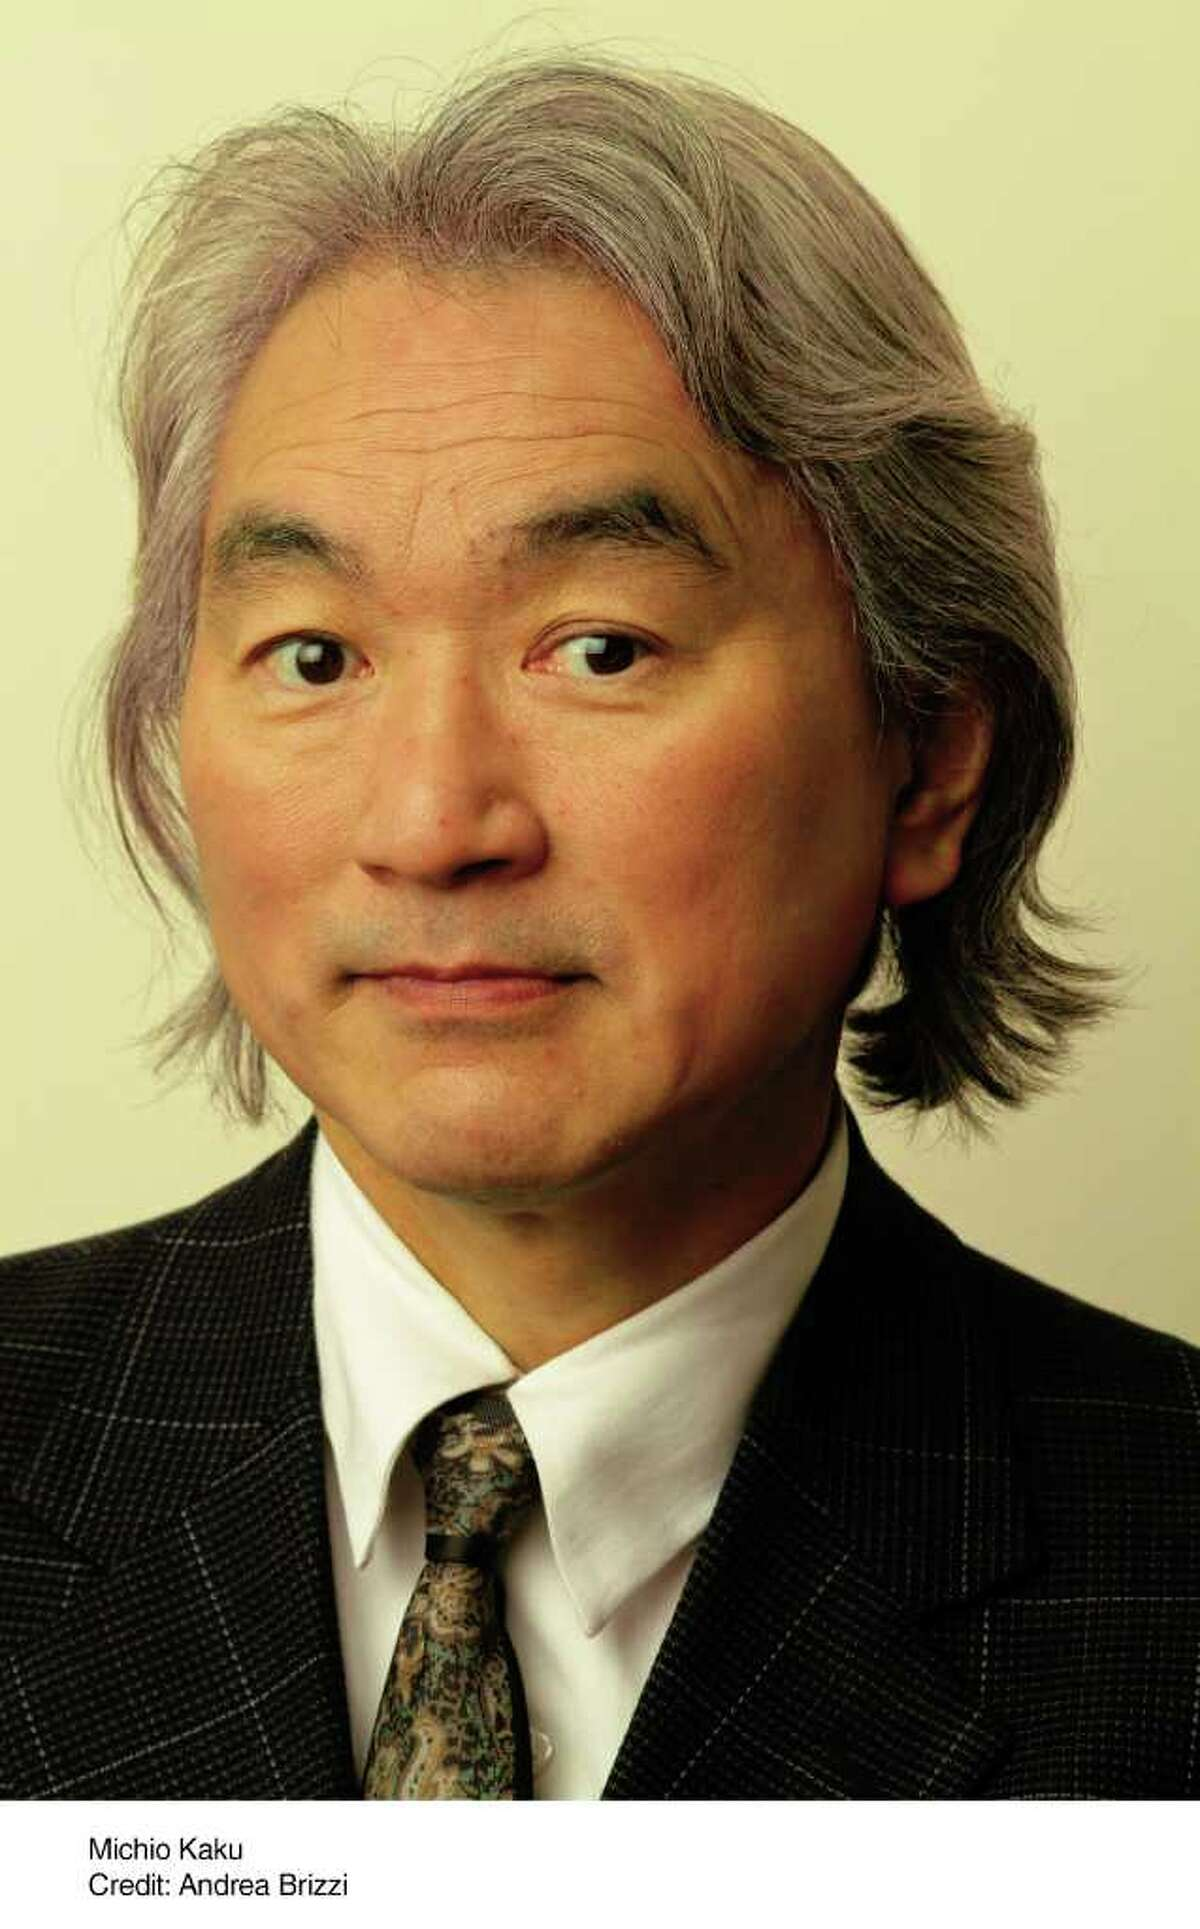 Physicist and author Michio Kaku will speak at the University at Albany Tuesday.